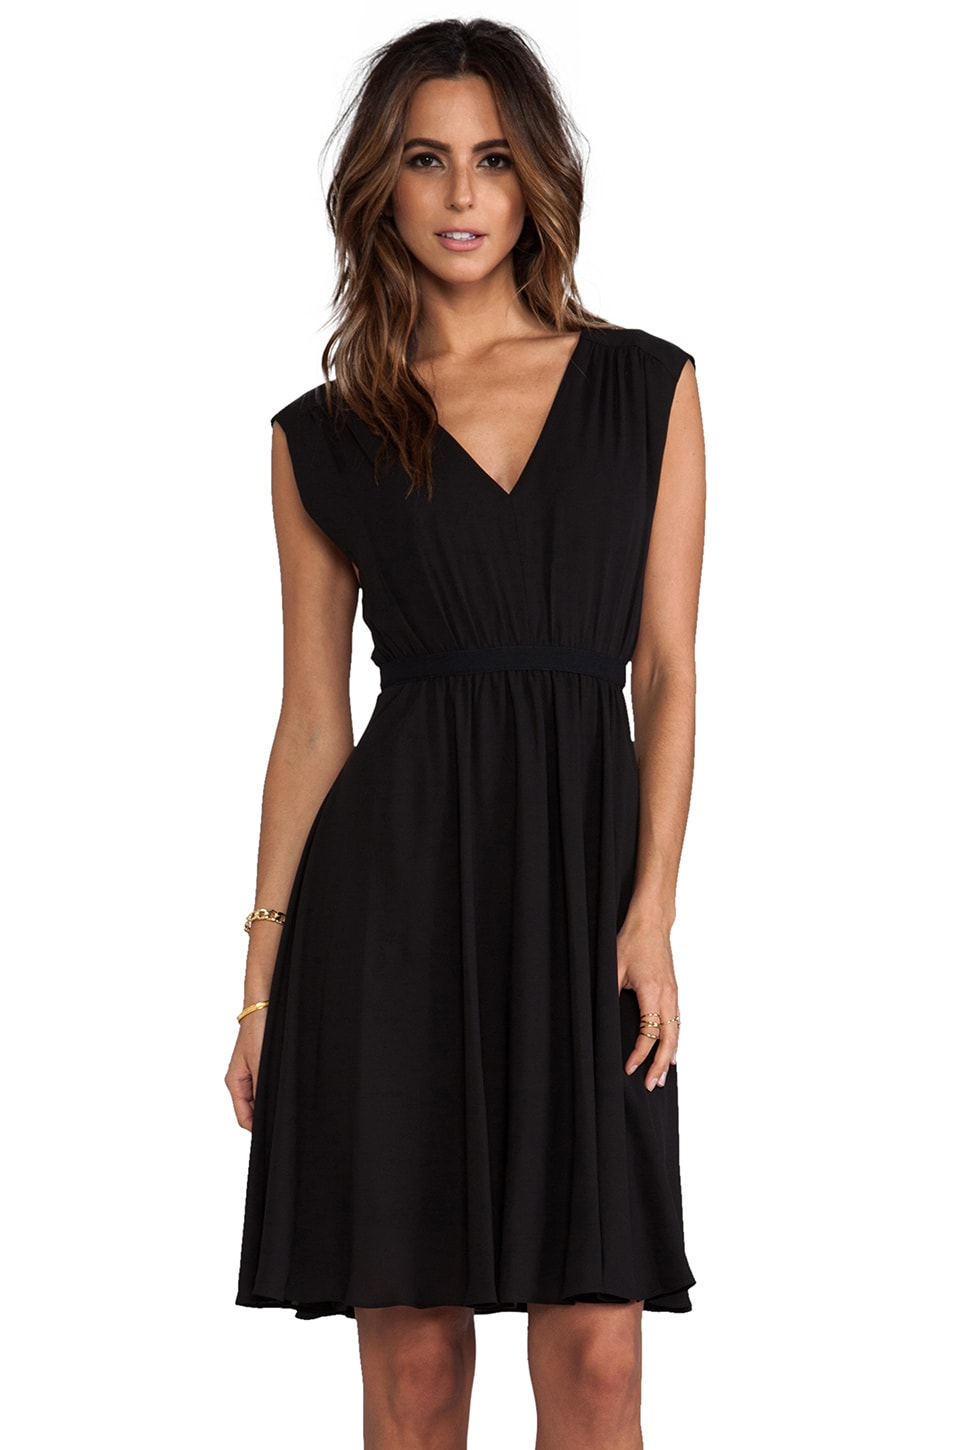 BCBGMAXAZRIA Rachel Sleeveless Dress in Black